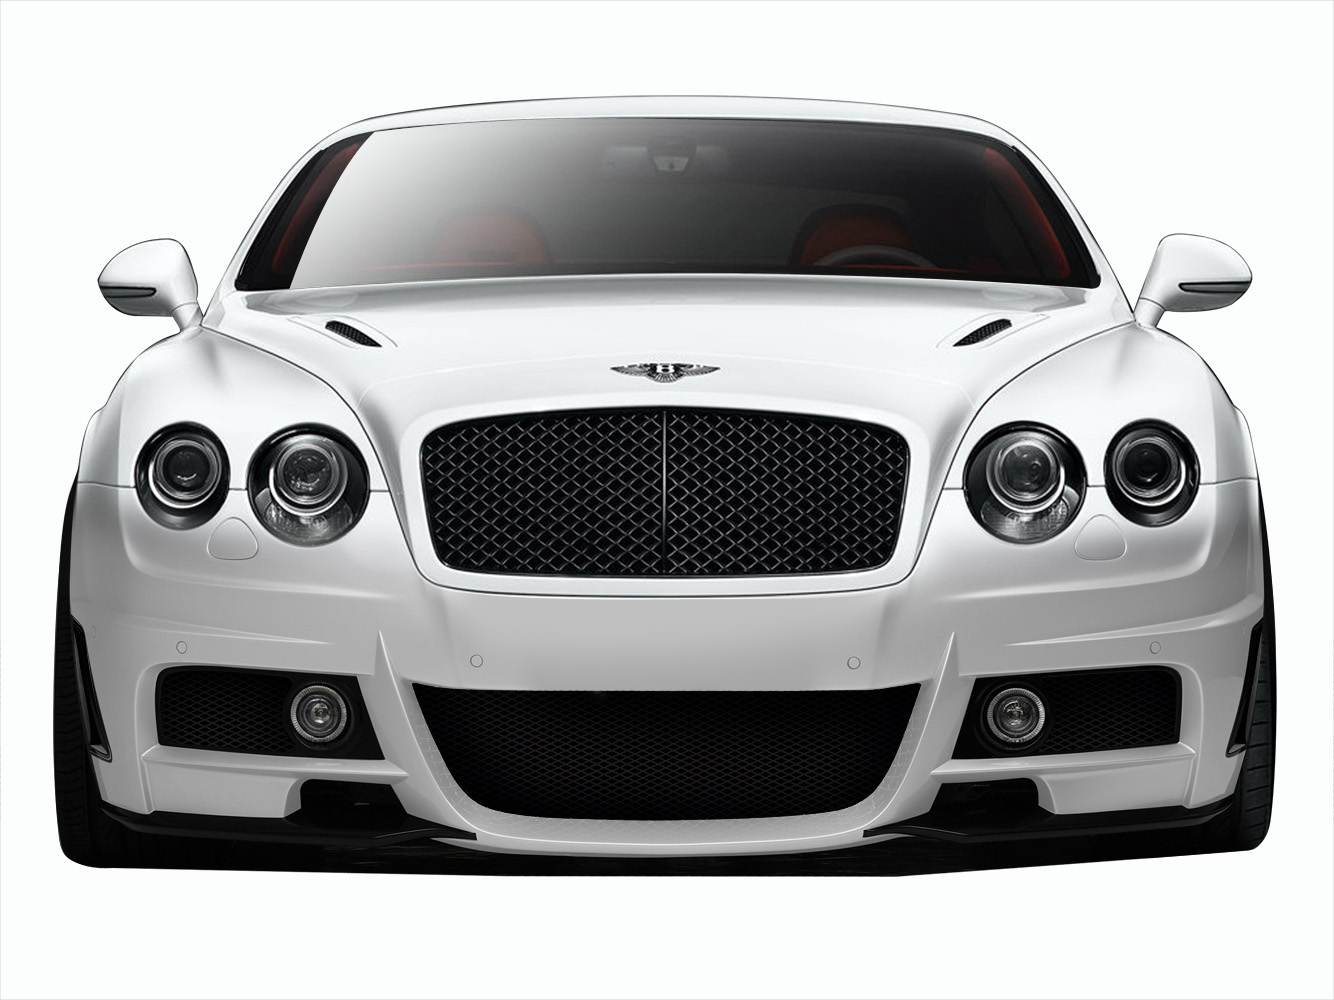 2003-2010 Bentley Continental GT GTC AF-1 Front Bumper Cover ( GFK ) - 1 Piece